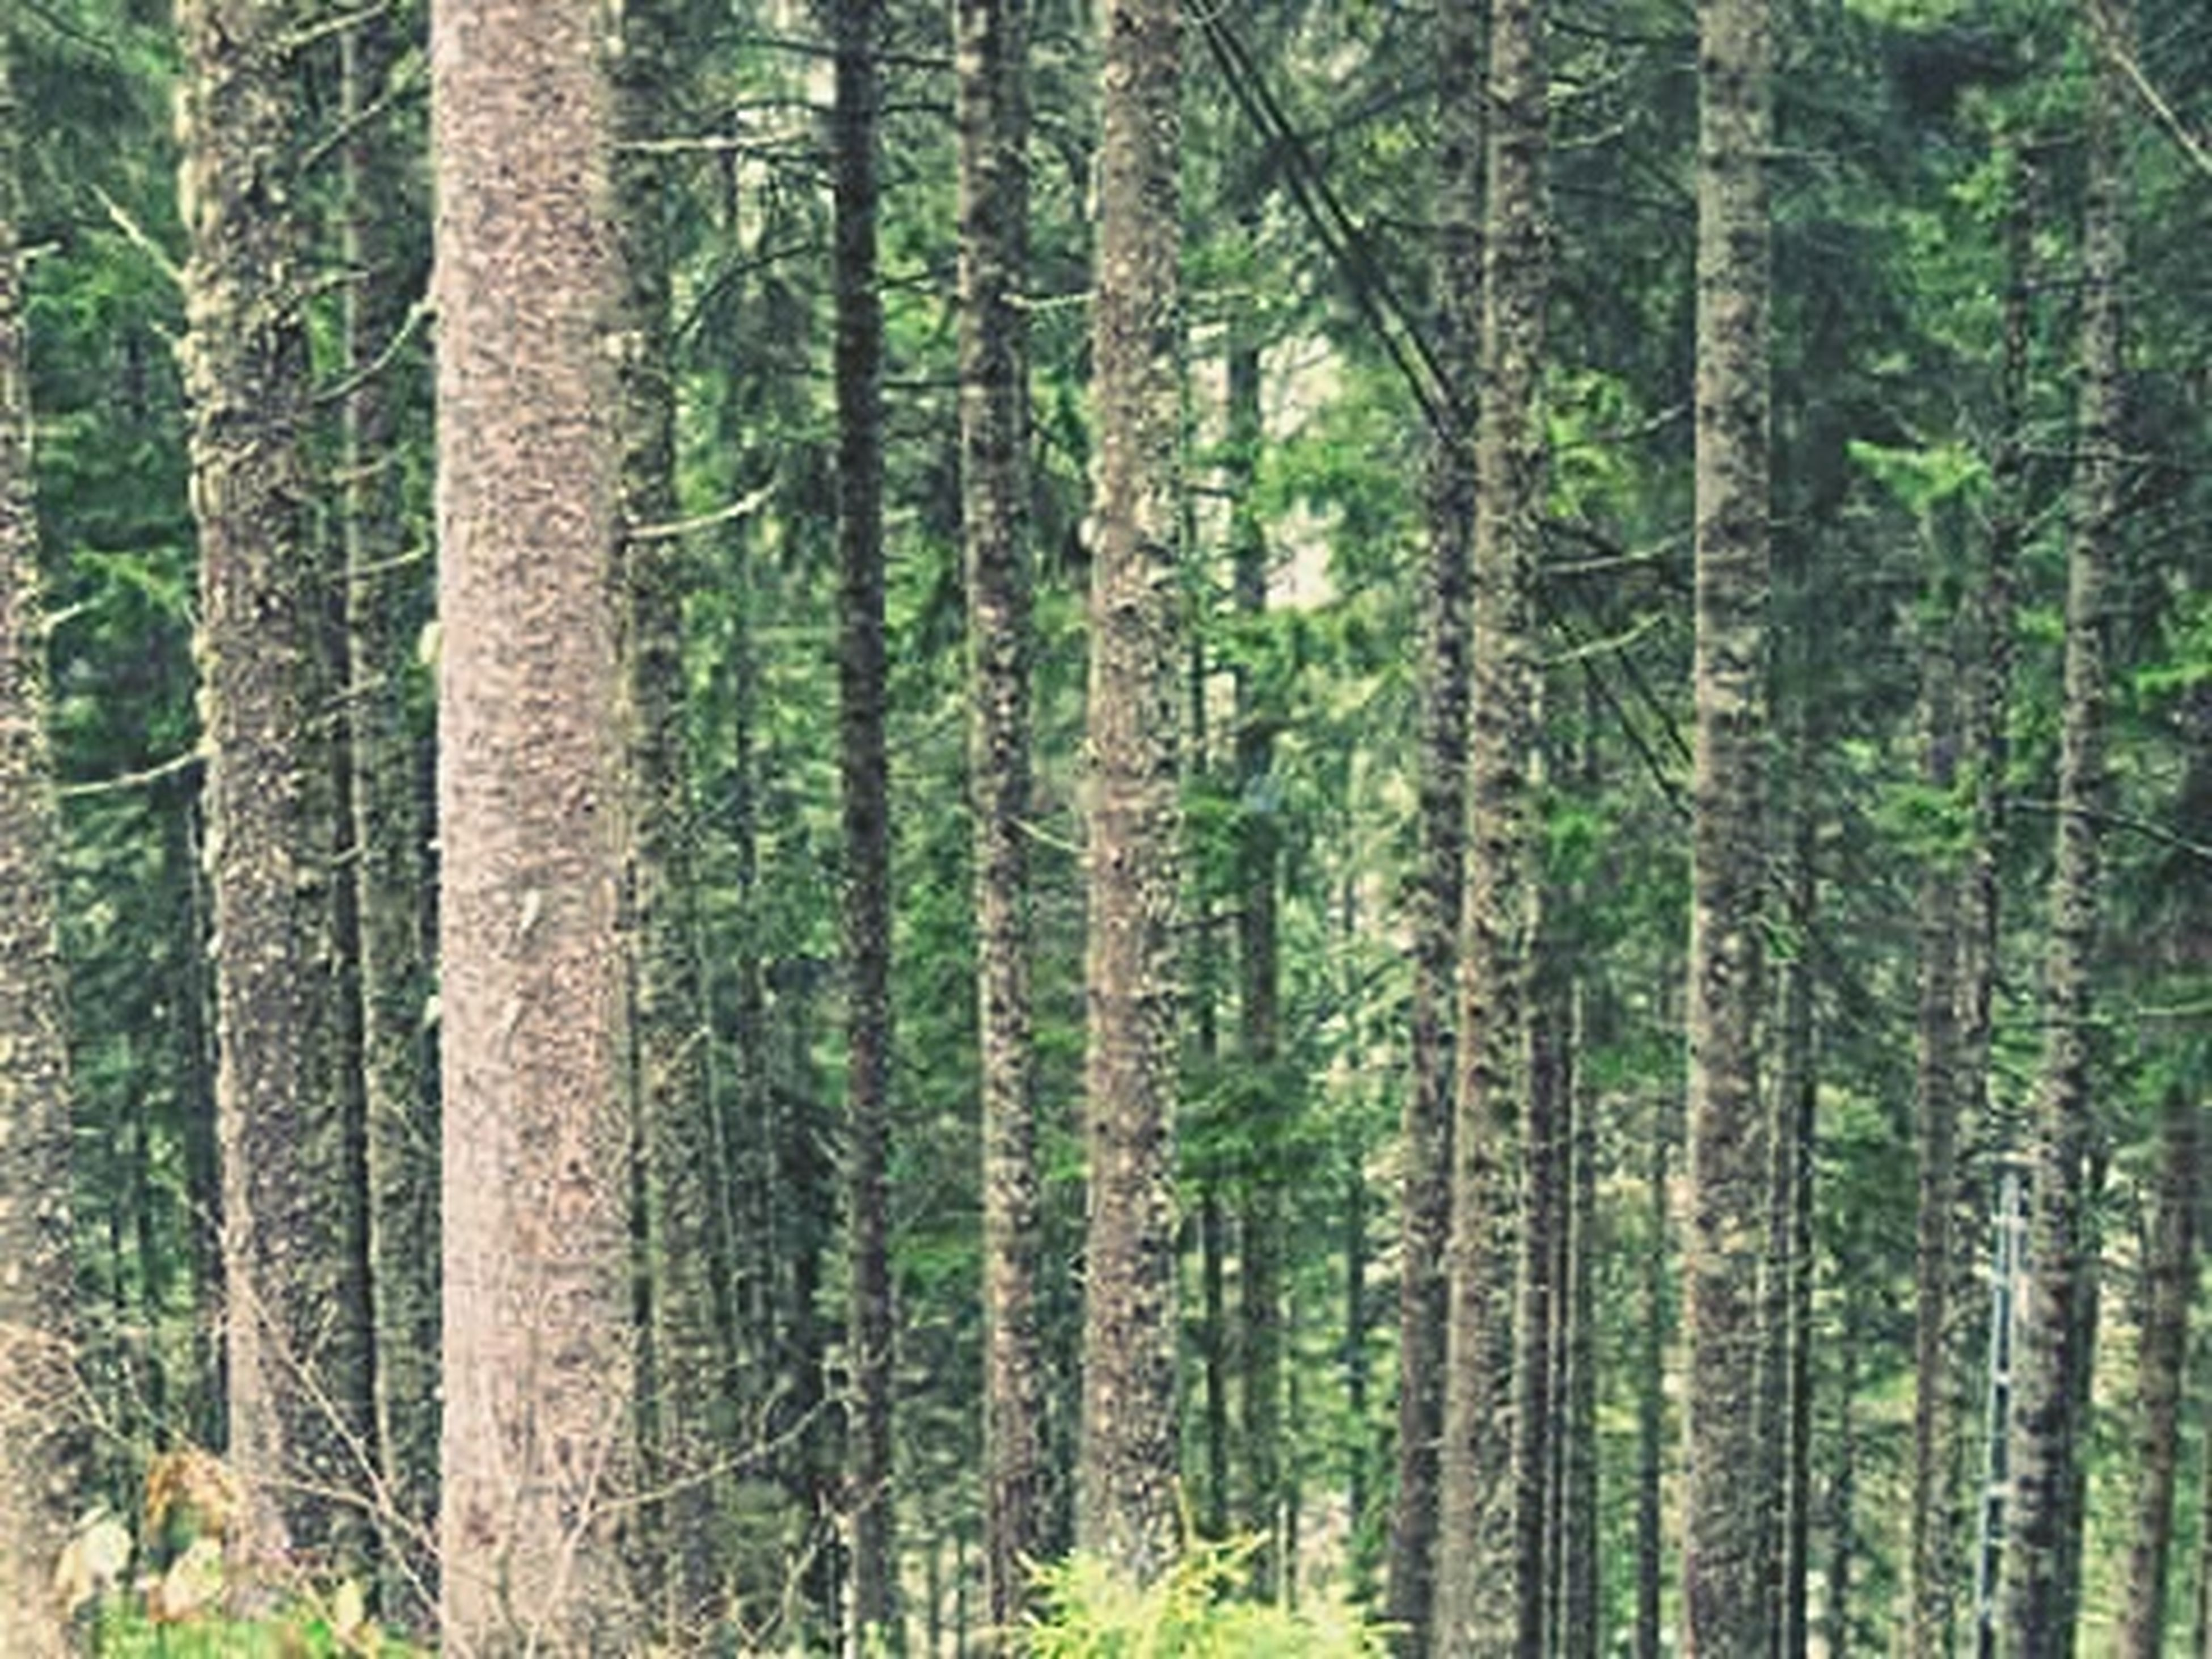 tree, forest, woodland, tree trunk, tranquility, growth, nature, tranquil scene, beauty in nature, scenics, green color, non-urban scene, abundance, woods, lush foliage, day, landscape, branch, outdoors, no people